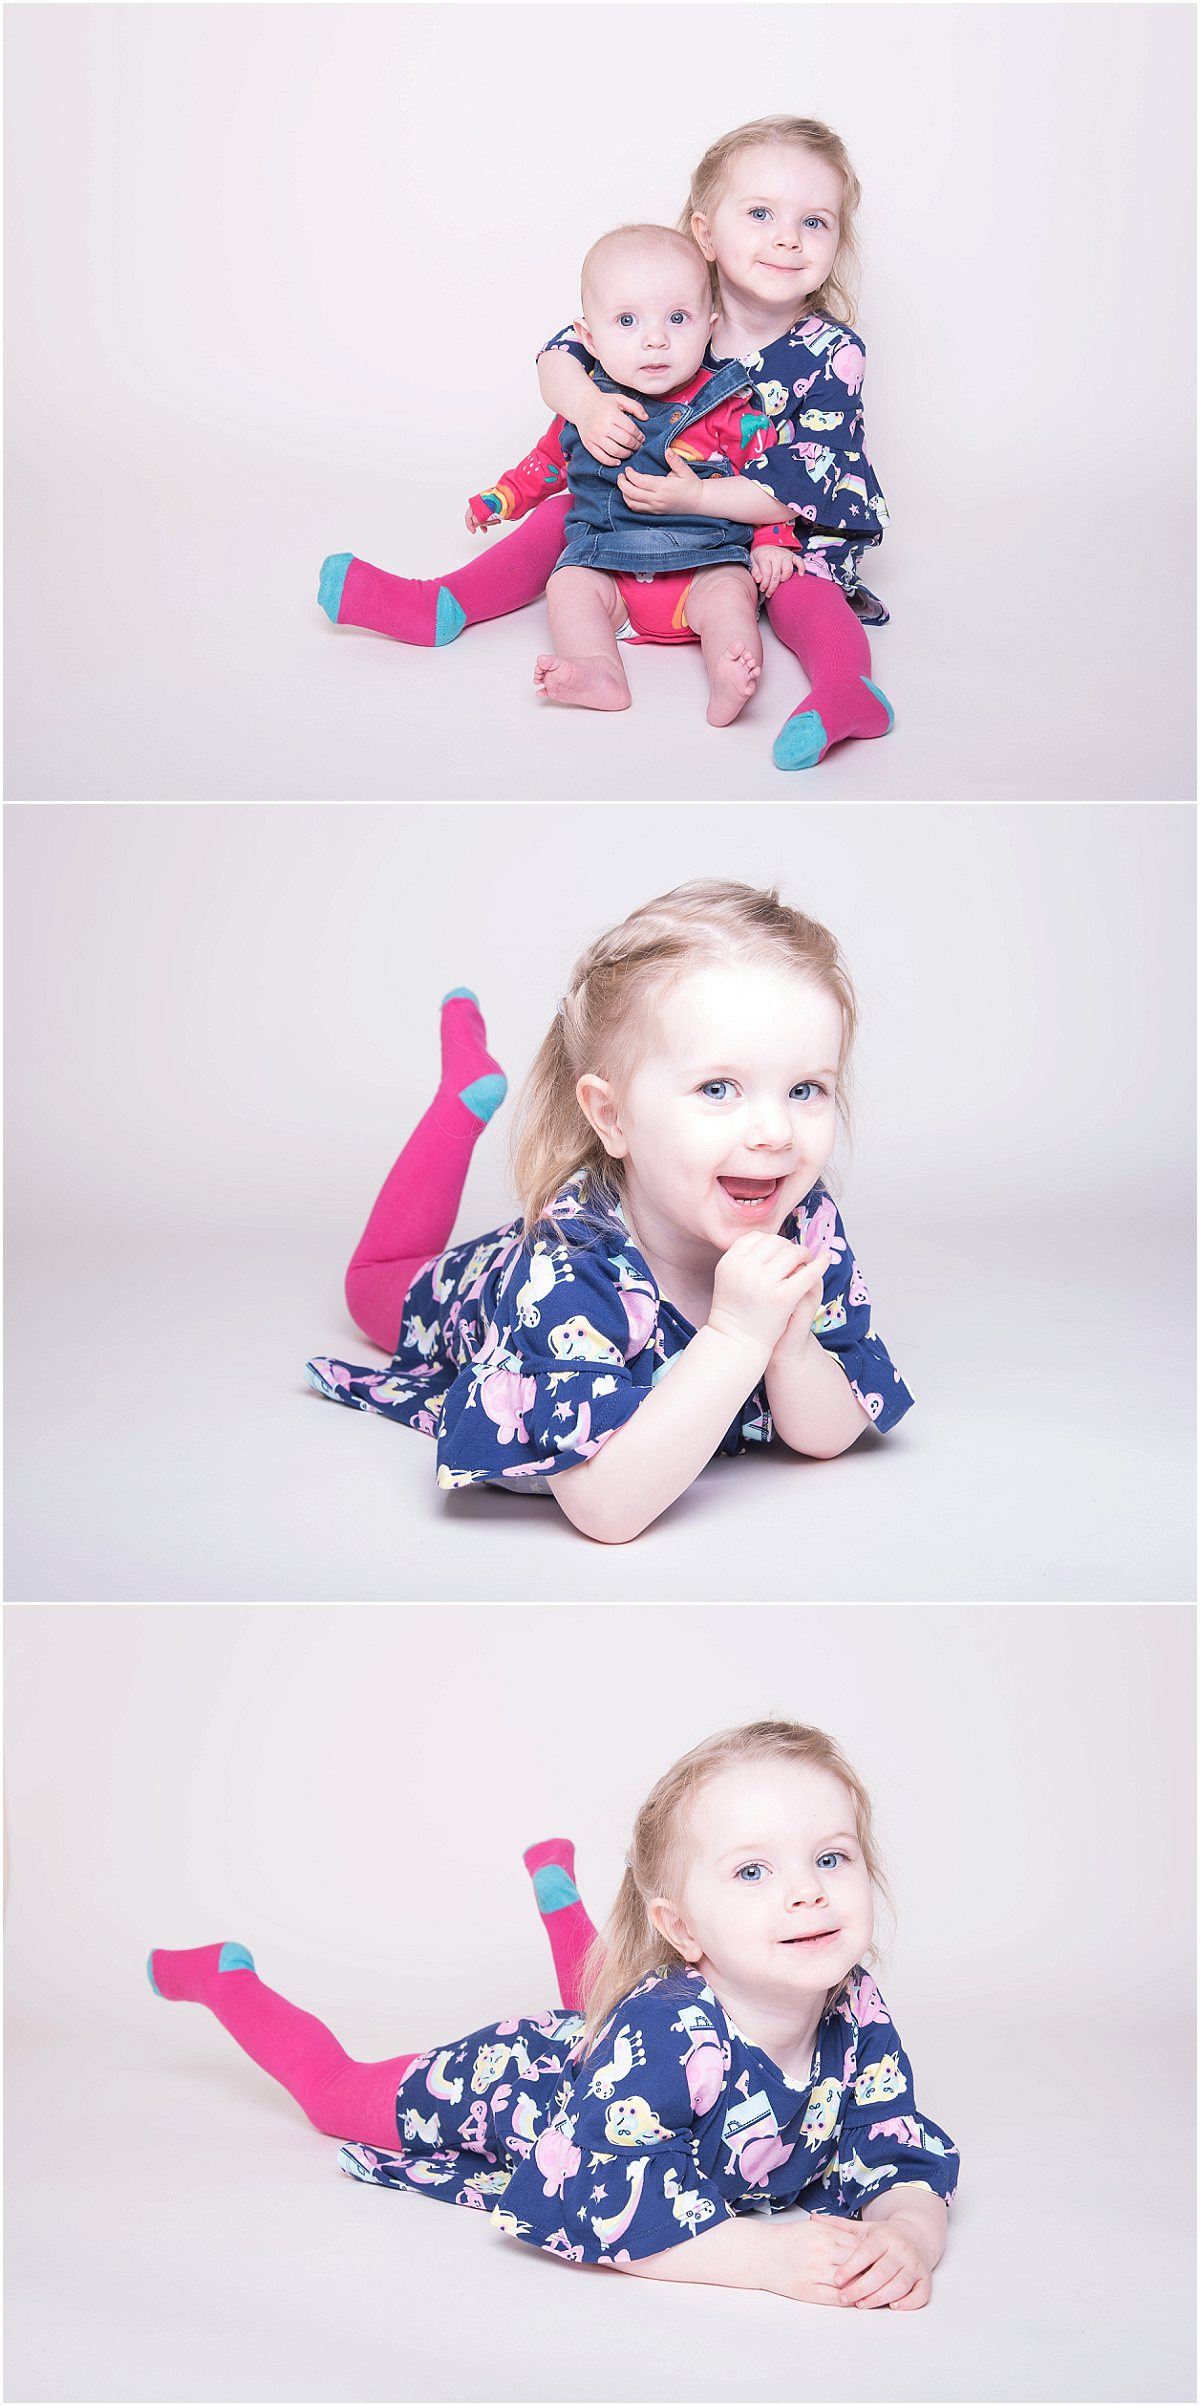 Daisy & Lilly's Studio Shoot with Little Moment Photography